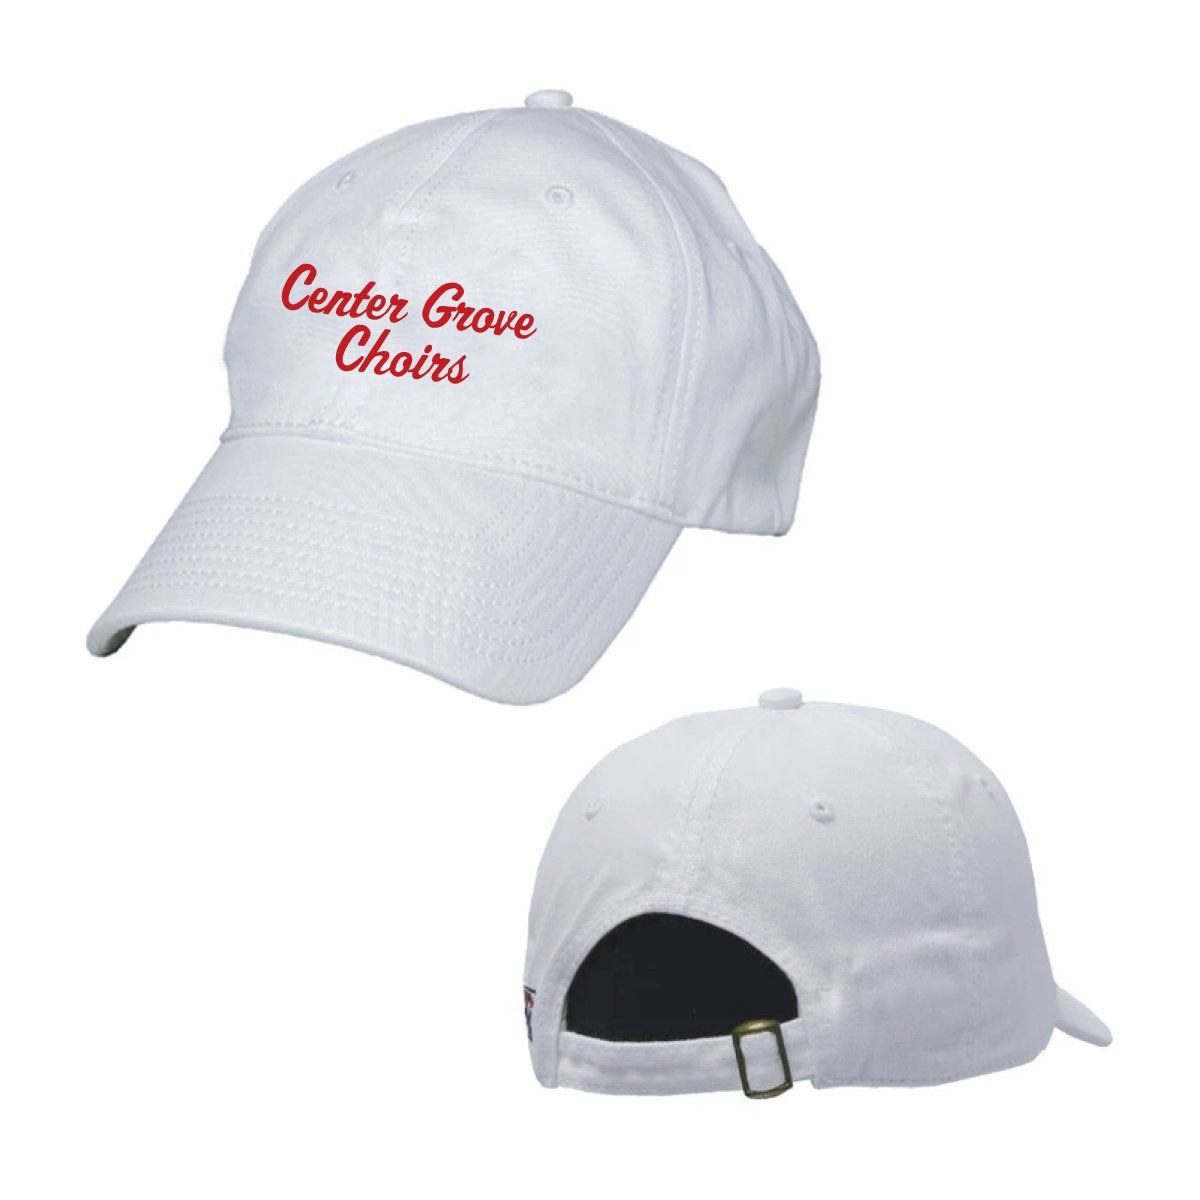 Center Grove Choir White Ball Cap